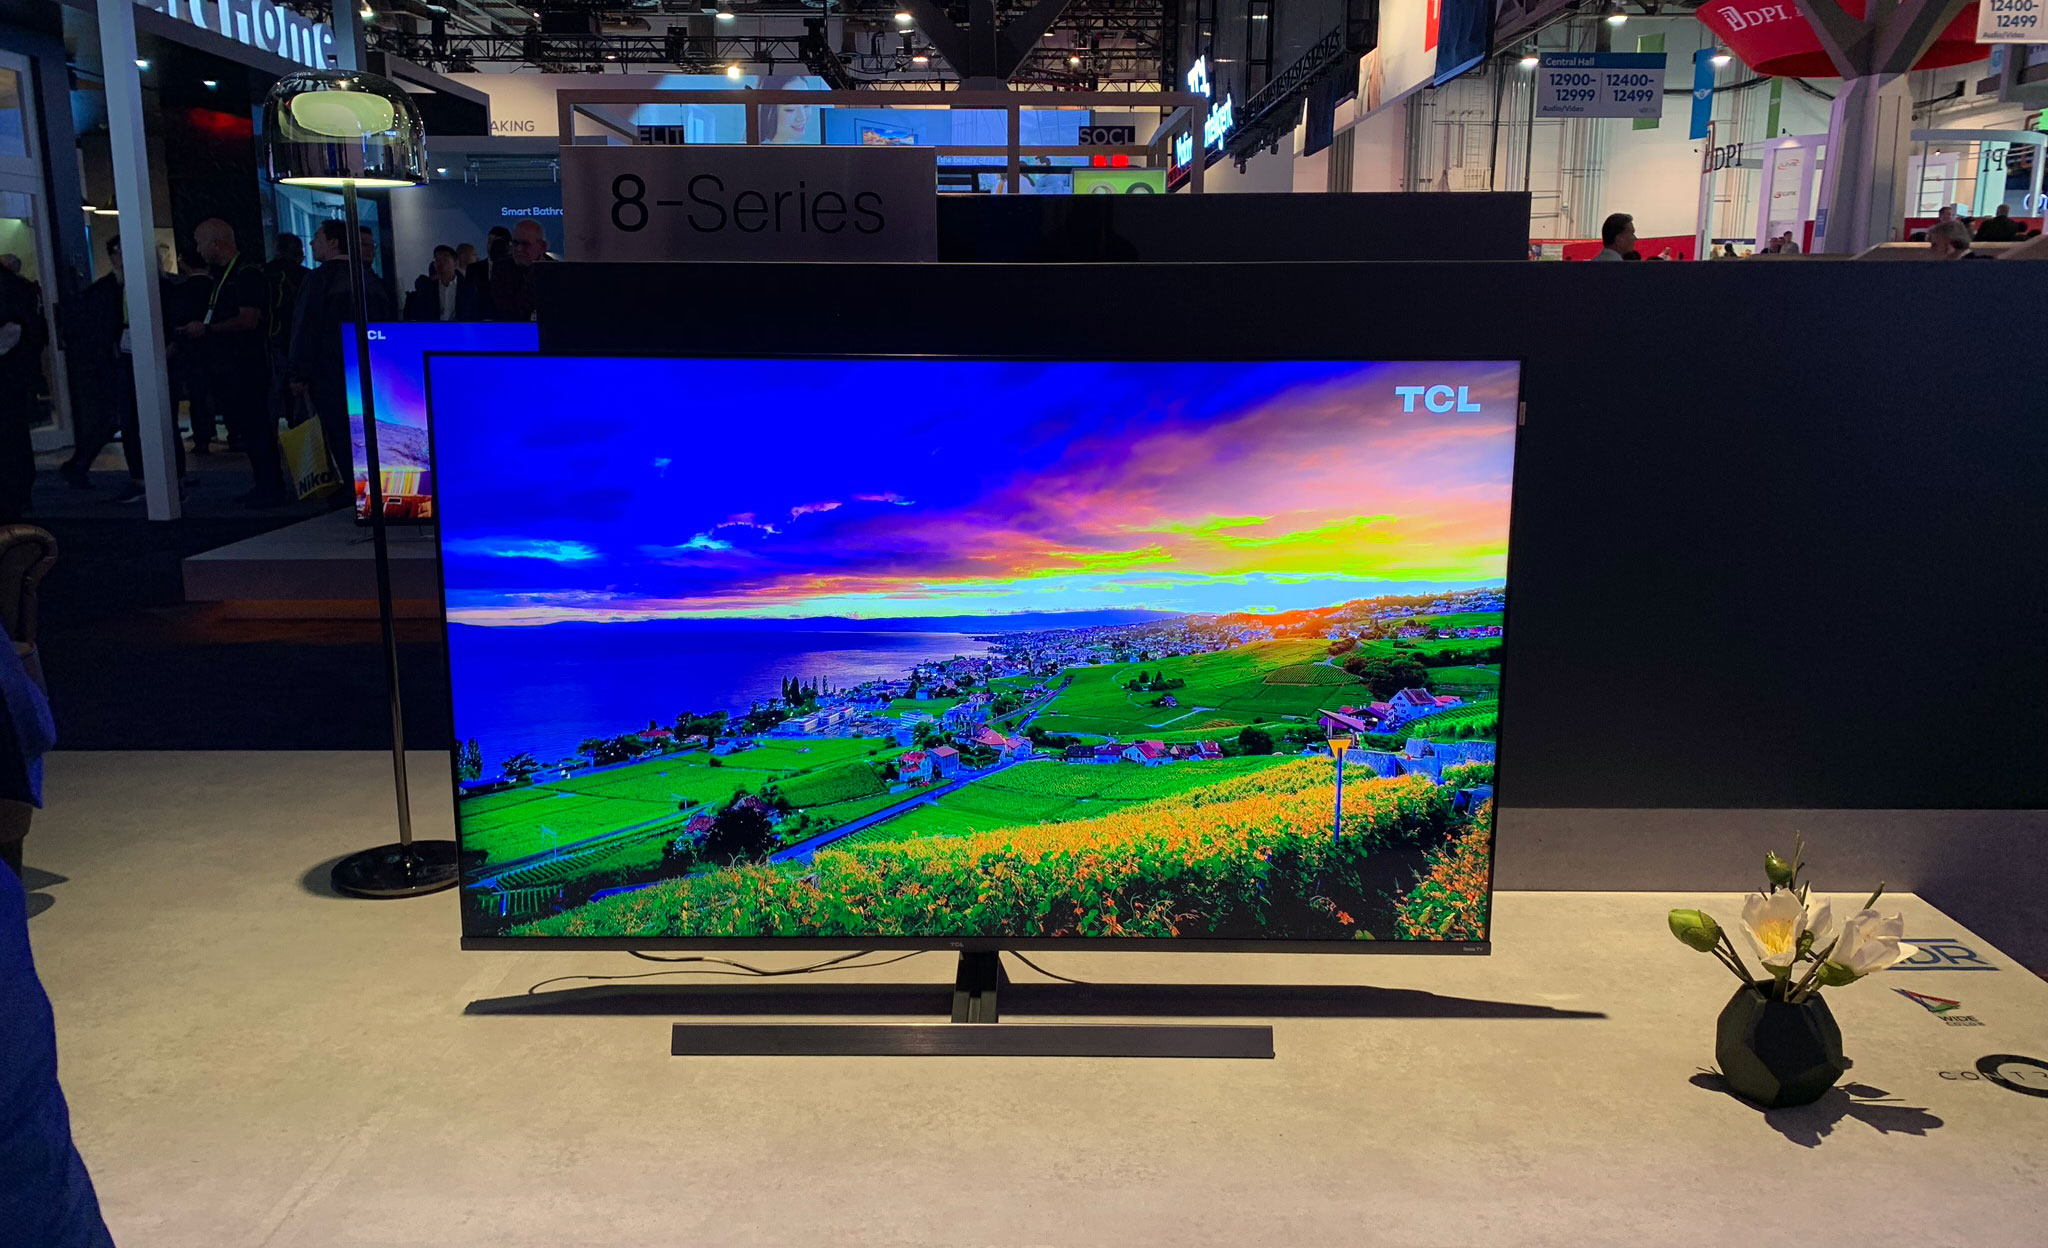 TCL to introduce miniLED-based 4K & 8K LCD TVs this year